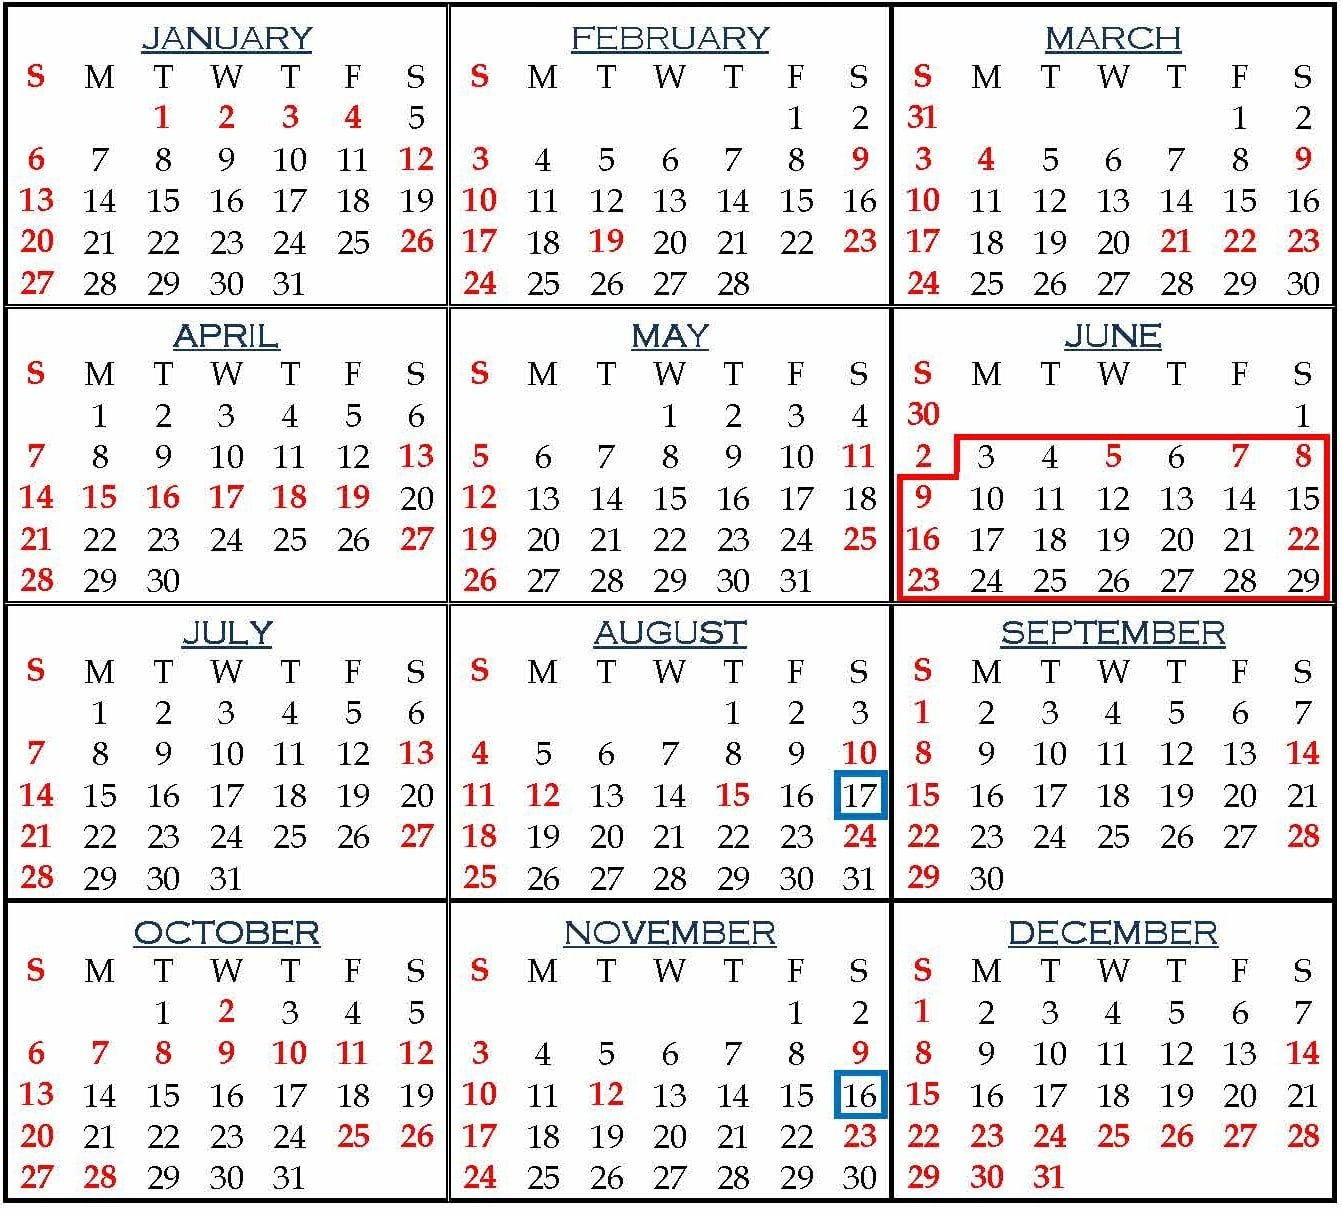 Holiday List For Employees Of Punjab And Haryana High Court, 2019 U Of L Calendar 2019